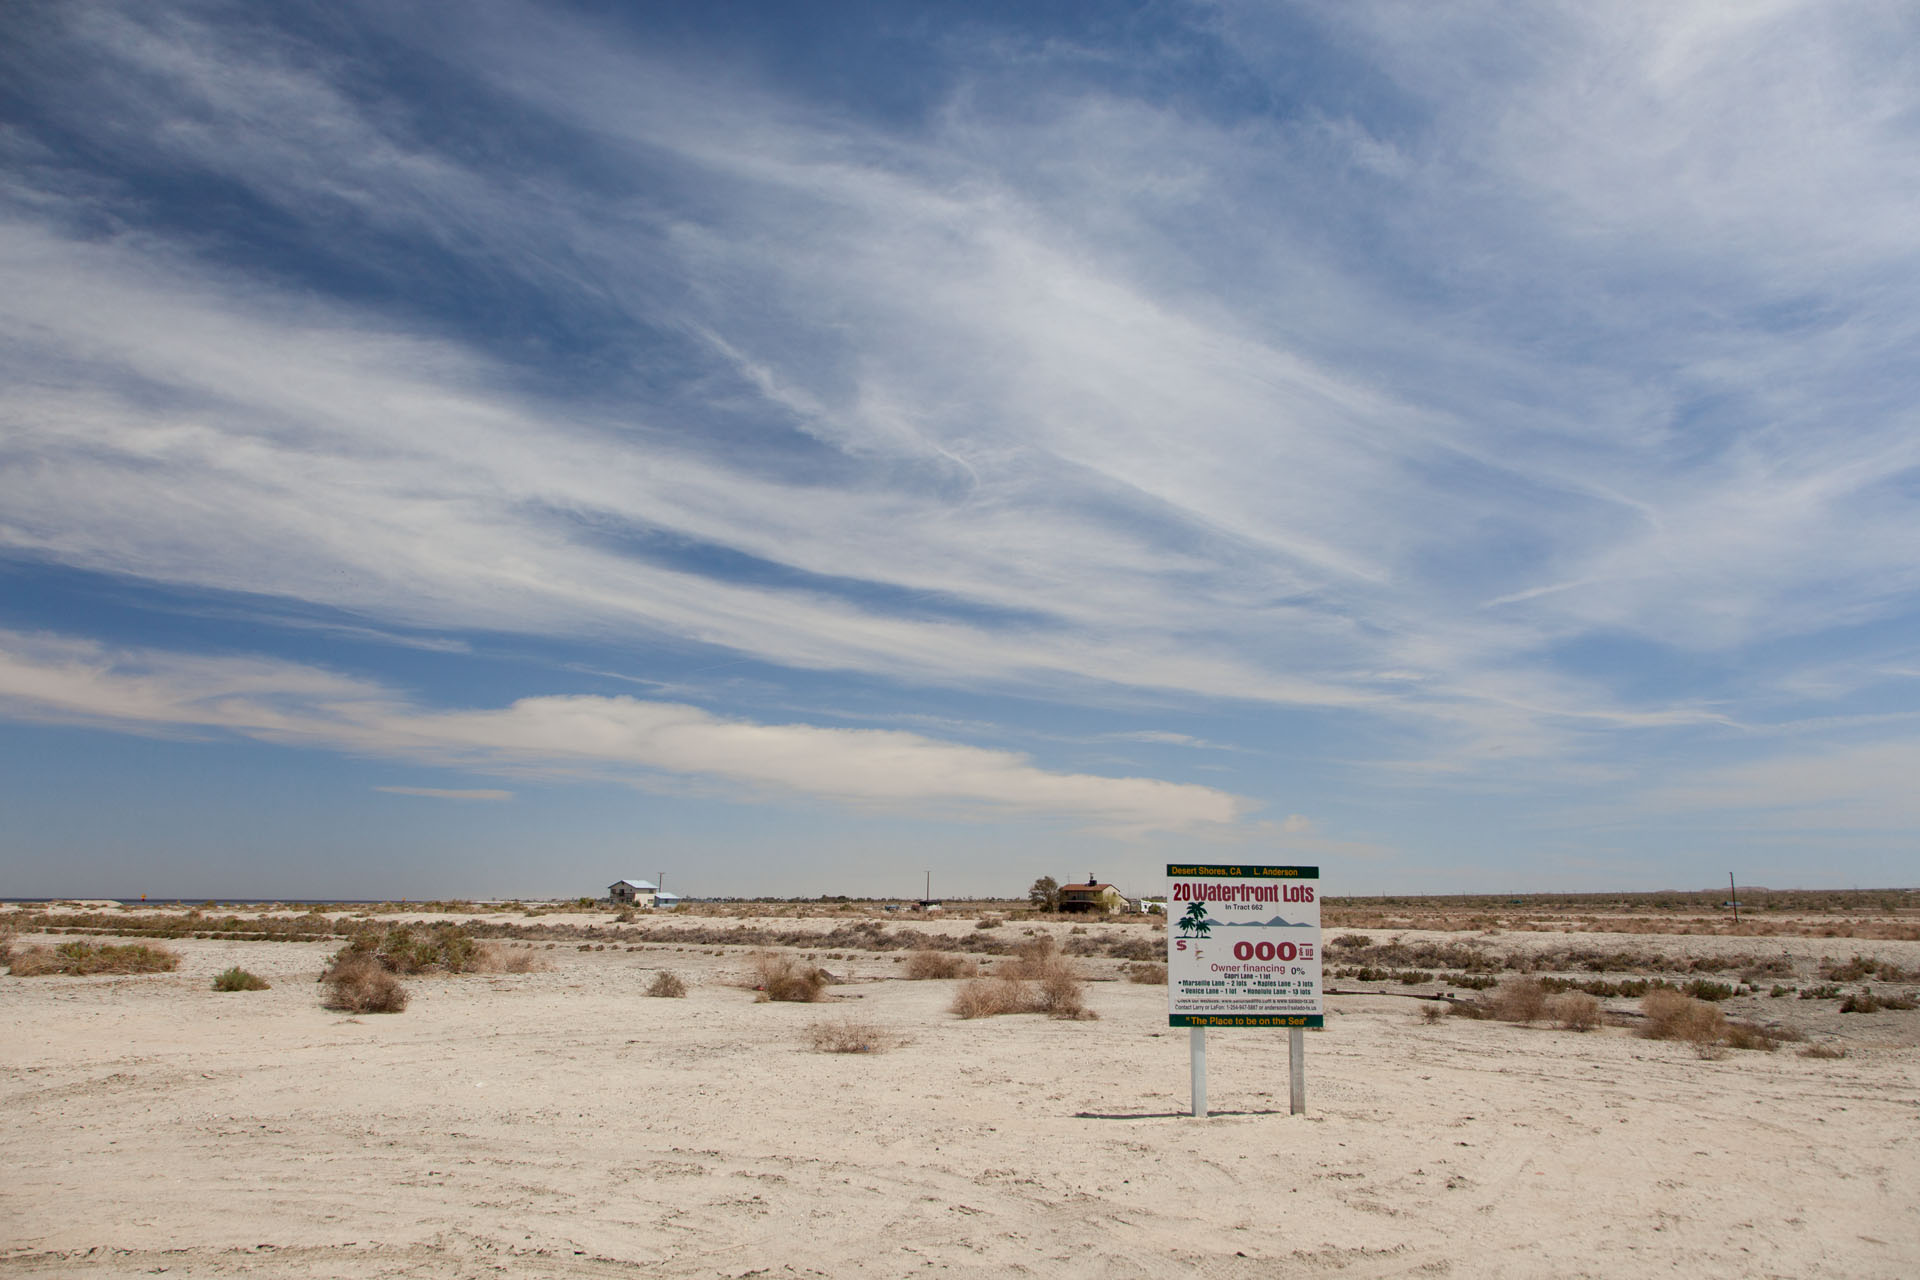 Waterfront Lots, Salton City